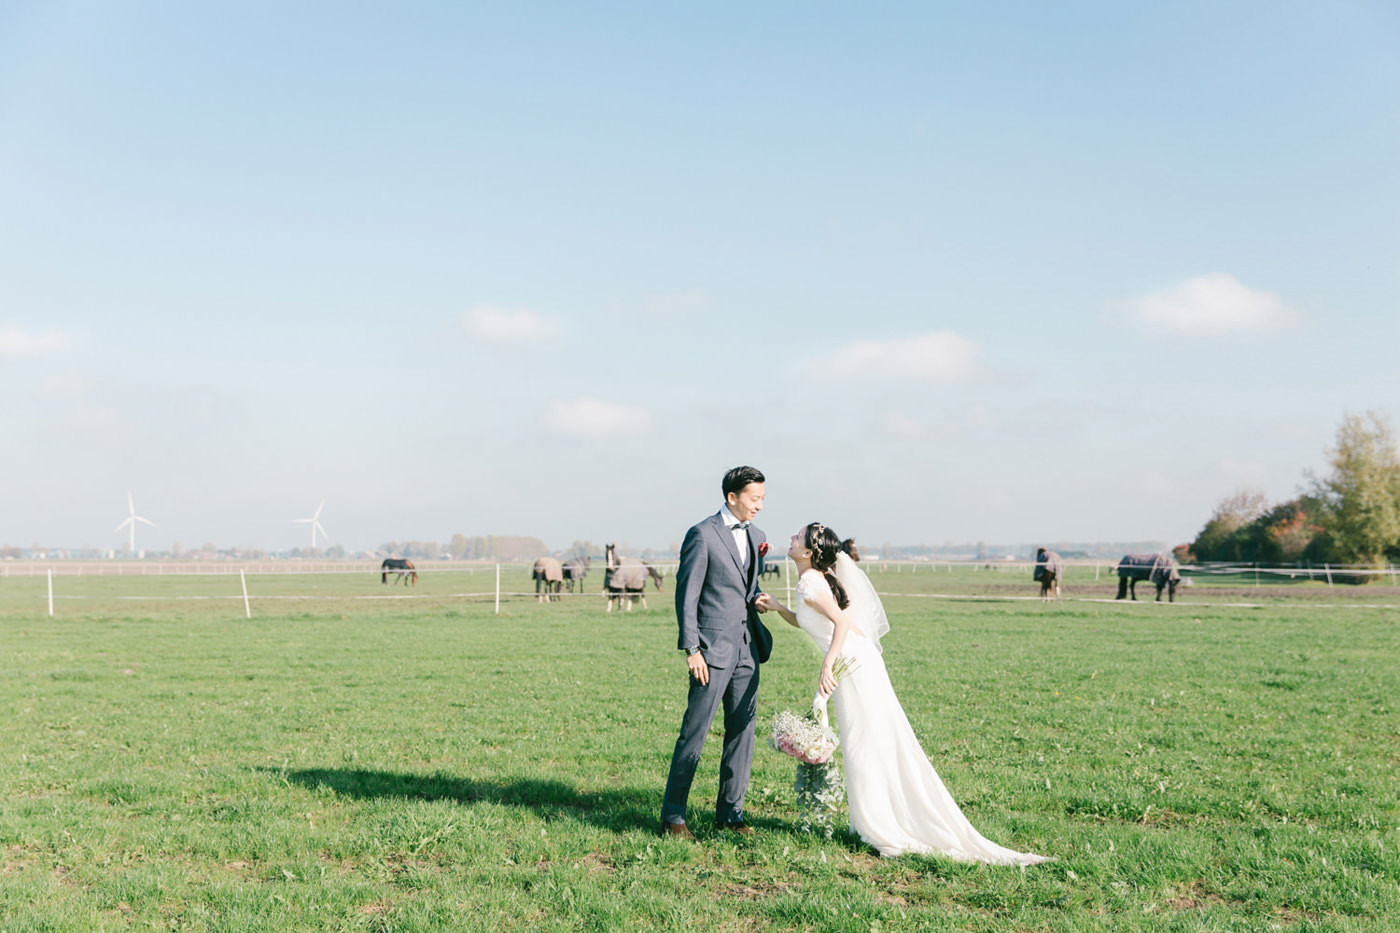 Countryside_Engagement_Session_Amsterdam_Netherlands_by_CHYMO_&_